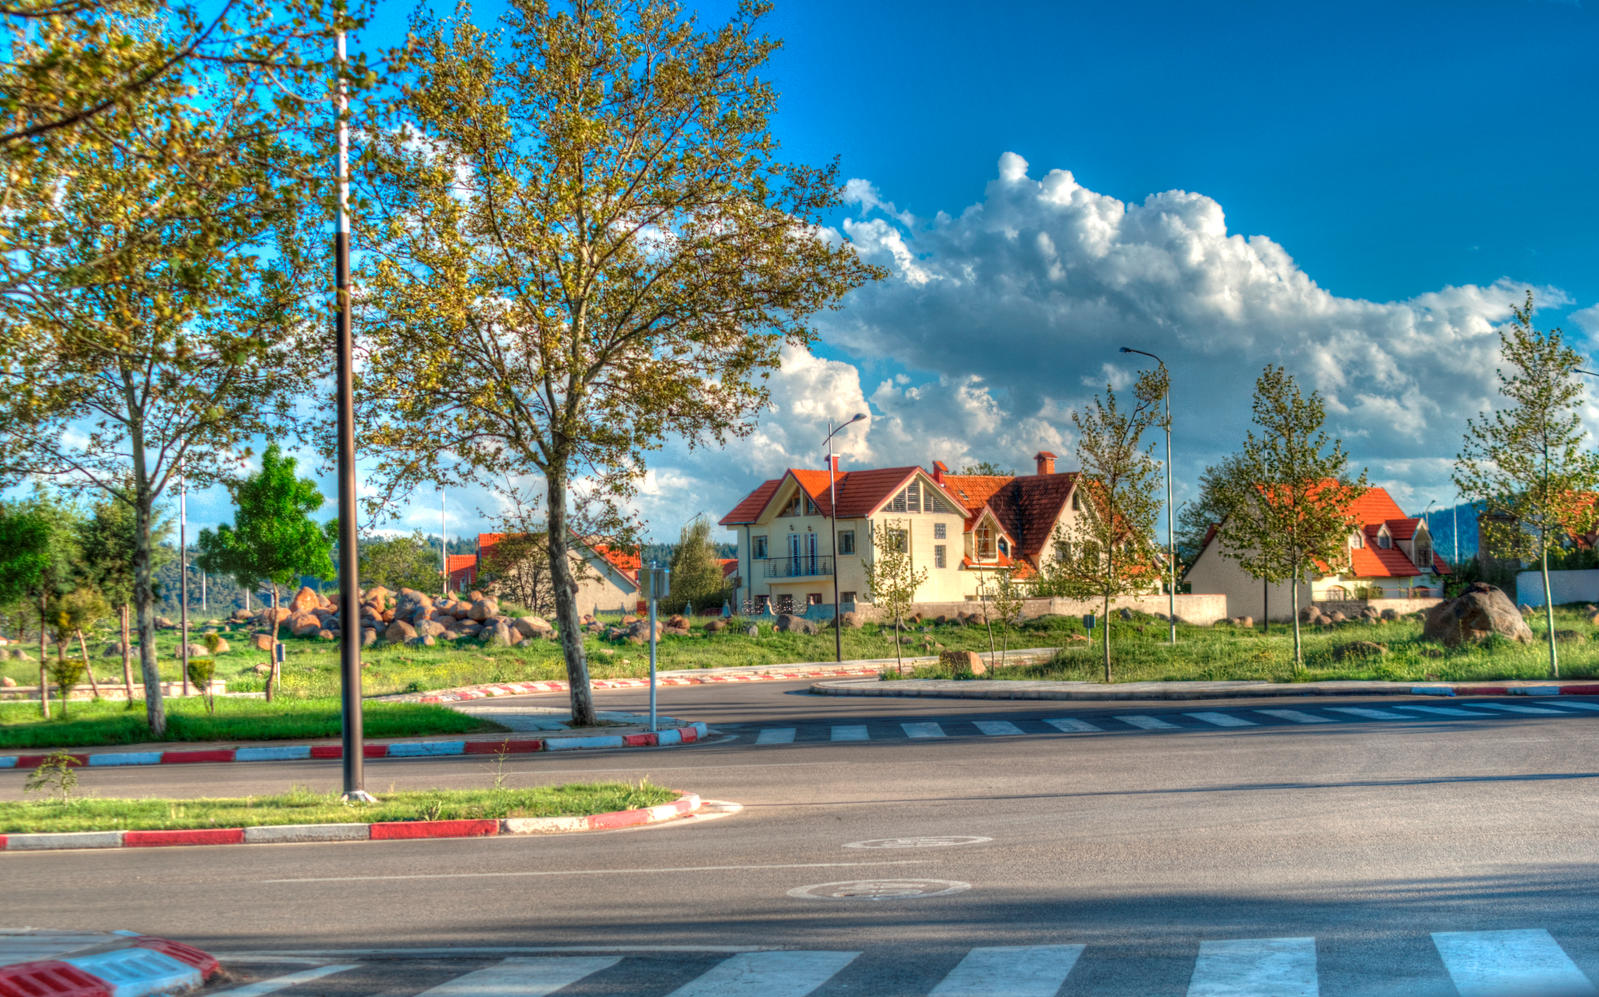 Ifrane Morocco  city pictures gallery : Ifrane Morocco by ouhti on DeviantArt